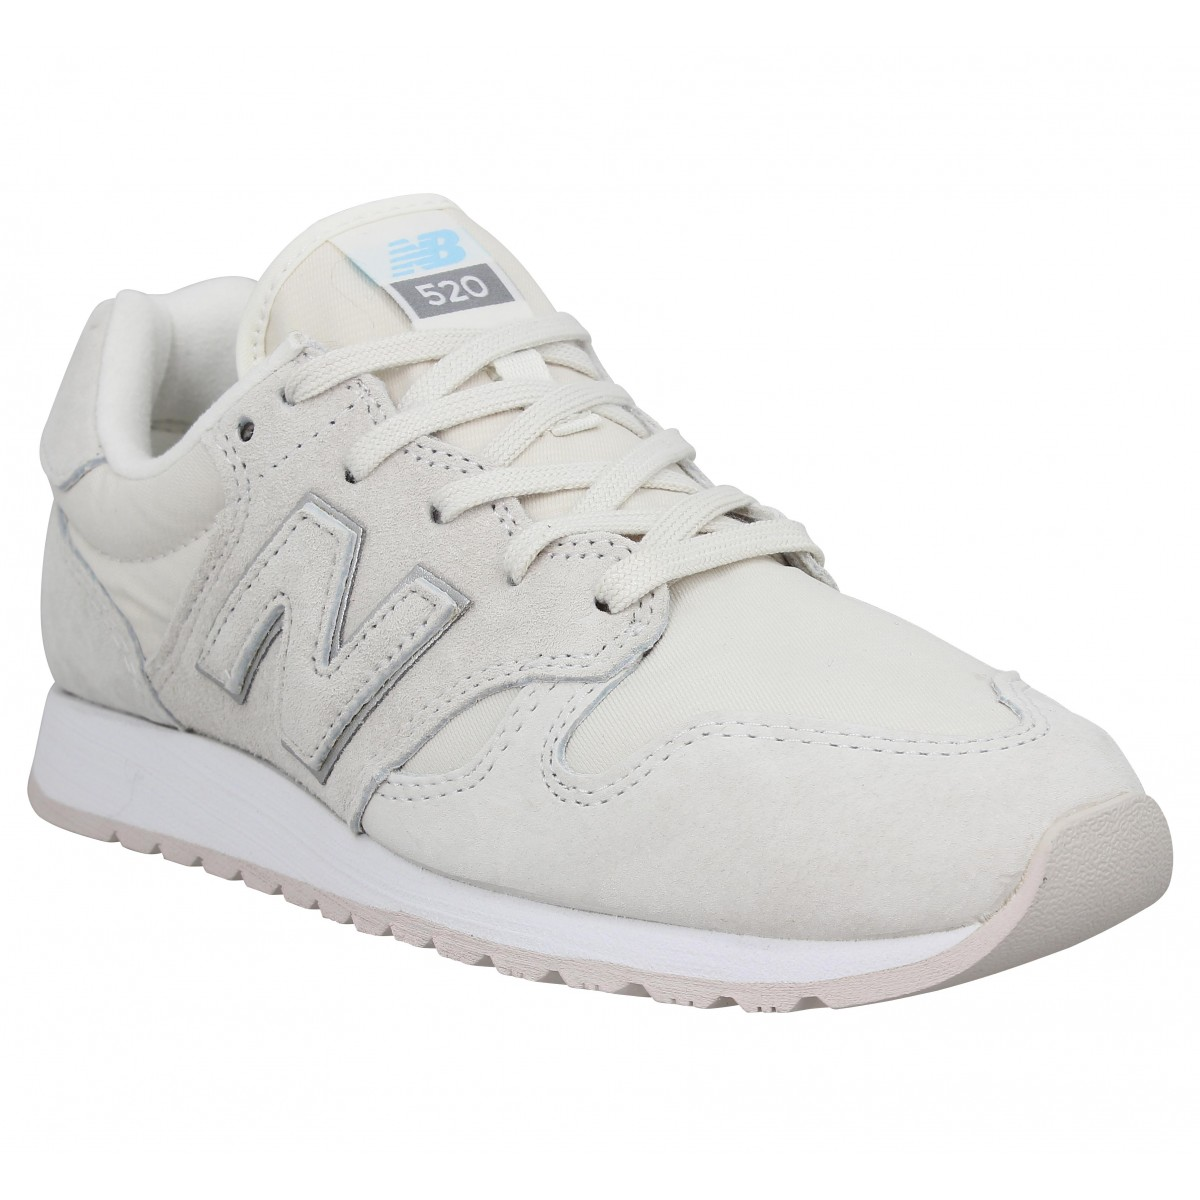 Baskets NEW BALANCE WL 520 velours toile Femme White